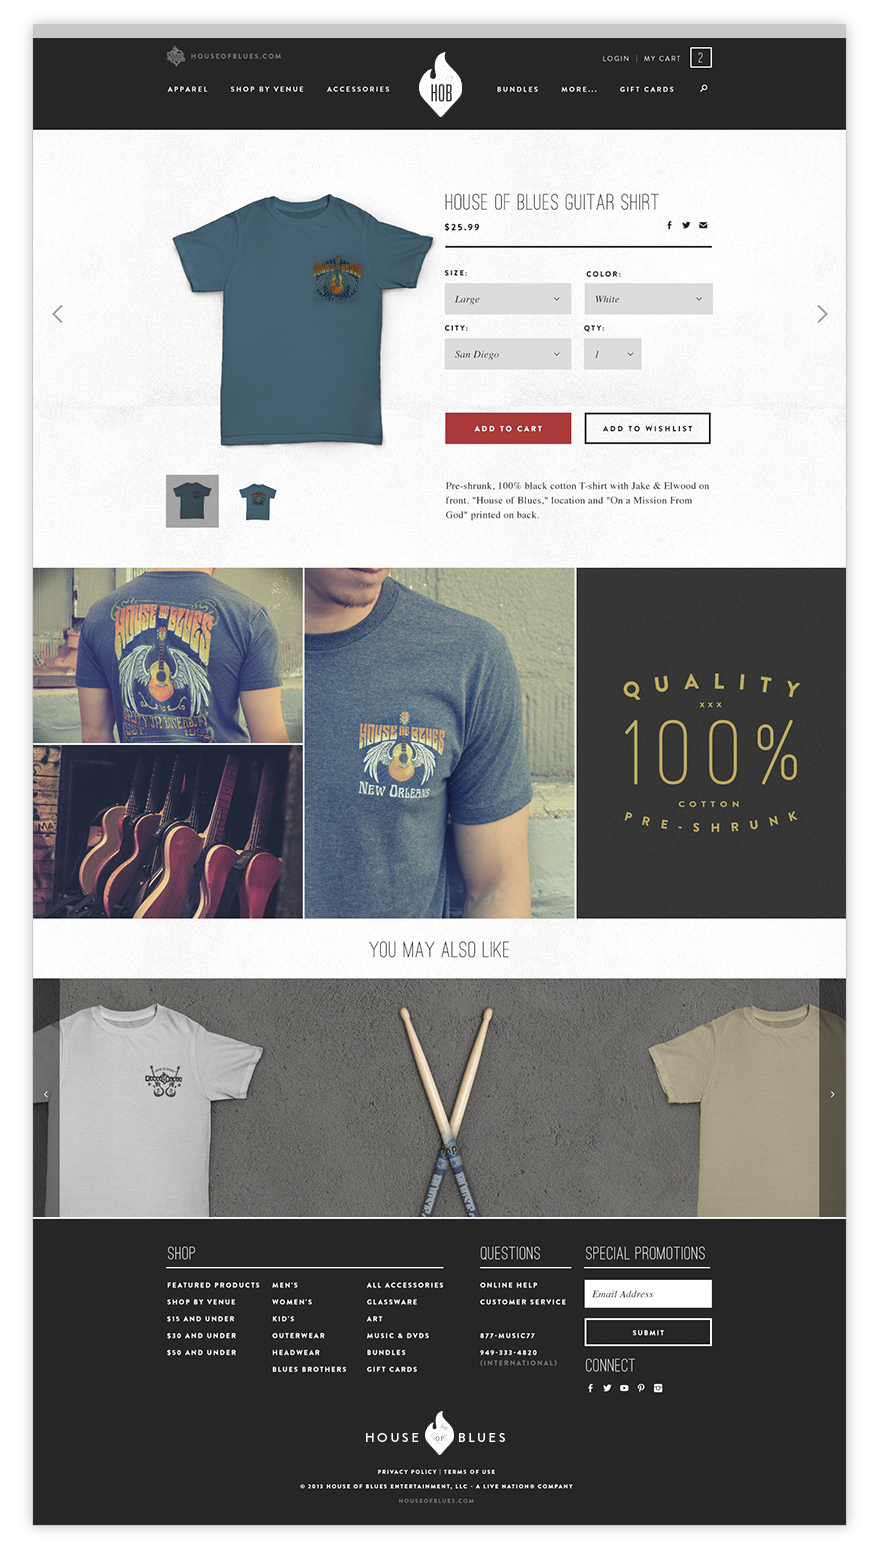 HOB merch site